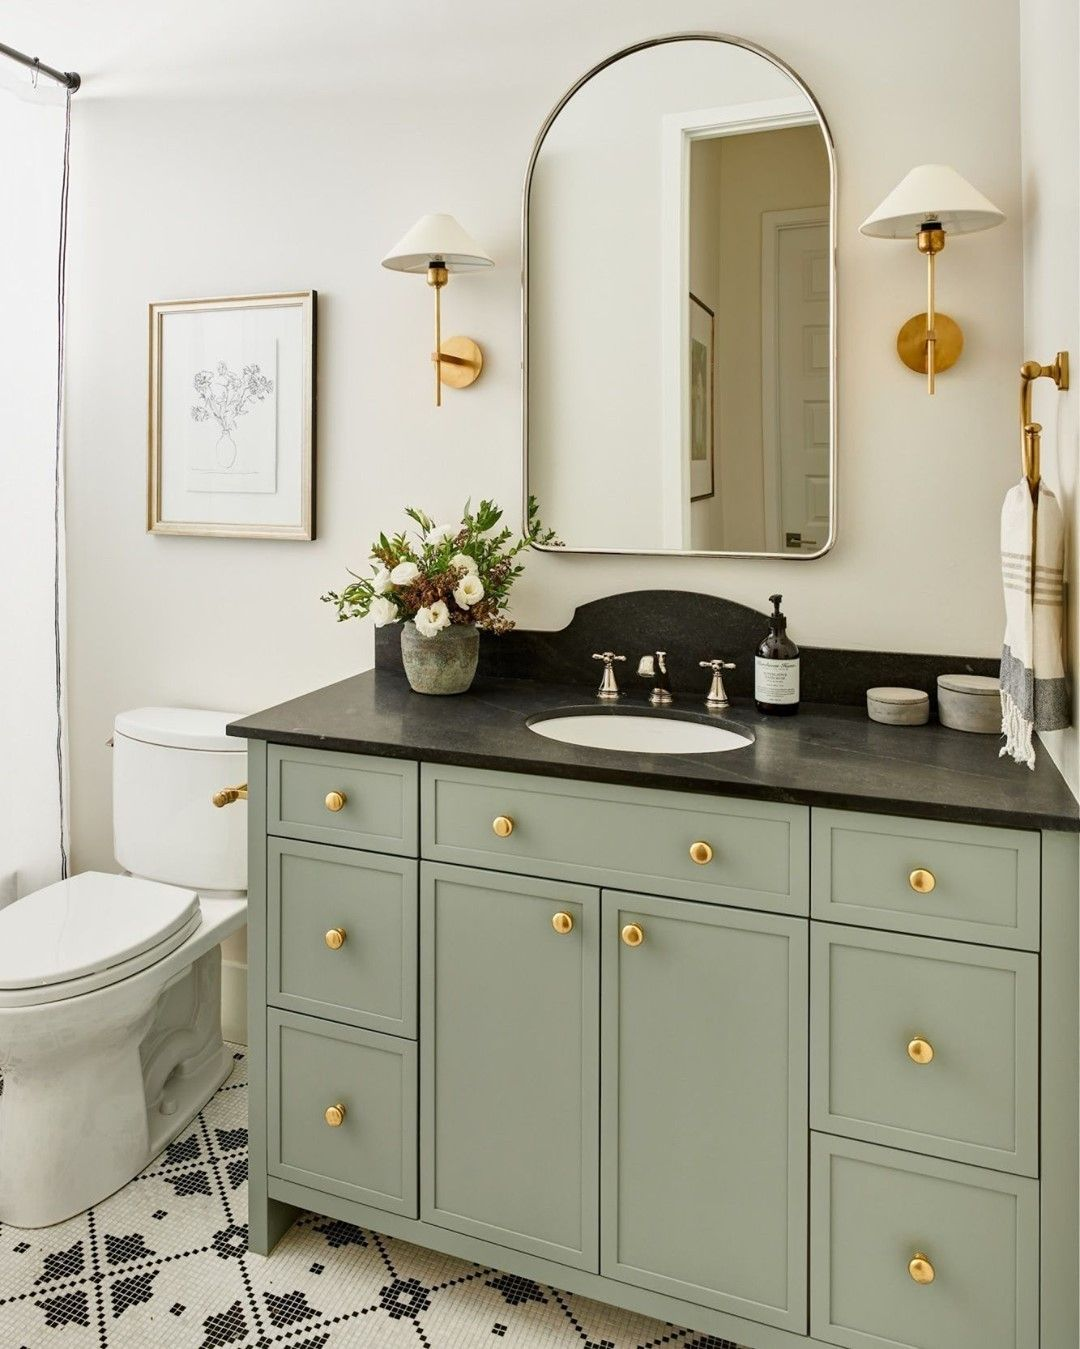 Sage Green Bathroom Vanity With Gold Hardware By Lexi Westergard Design In 2021 Guest Bathroom Remodel Guest Bathroom Design Guest Bathroom [ 1349 x 1080 Pixel ]